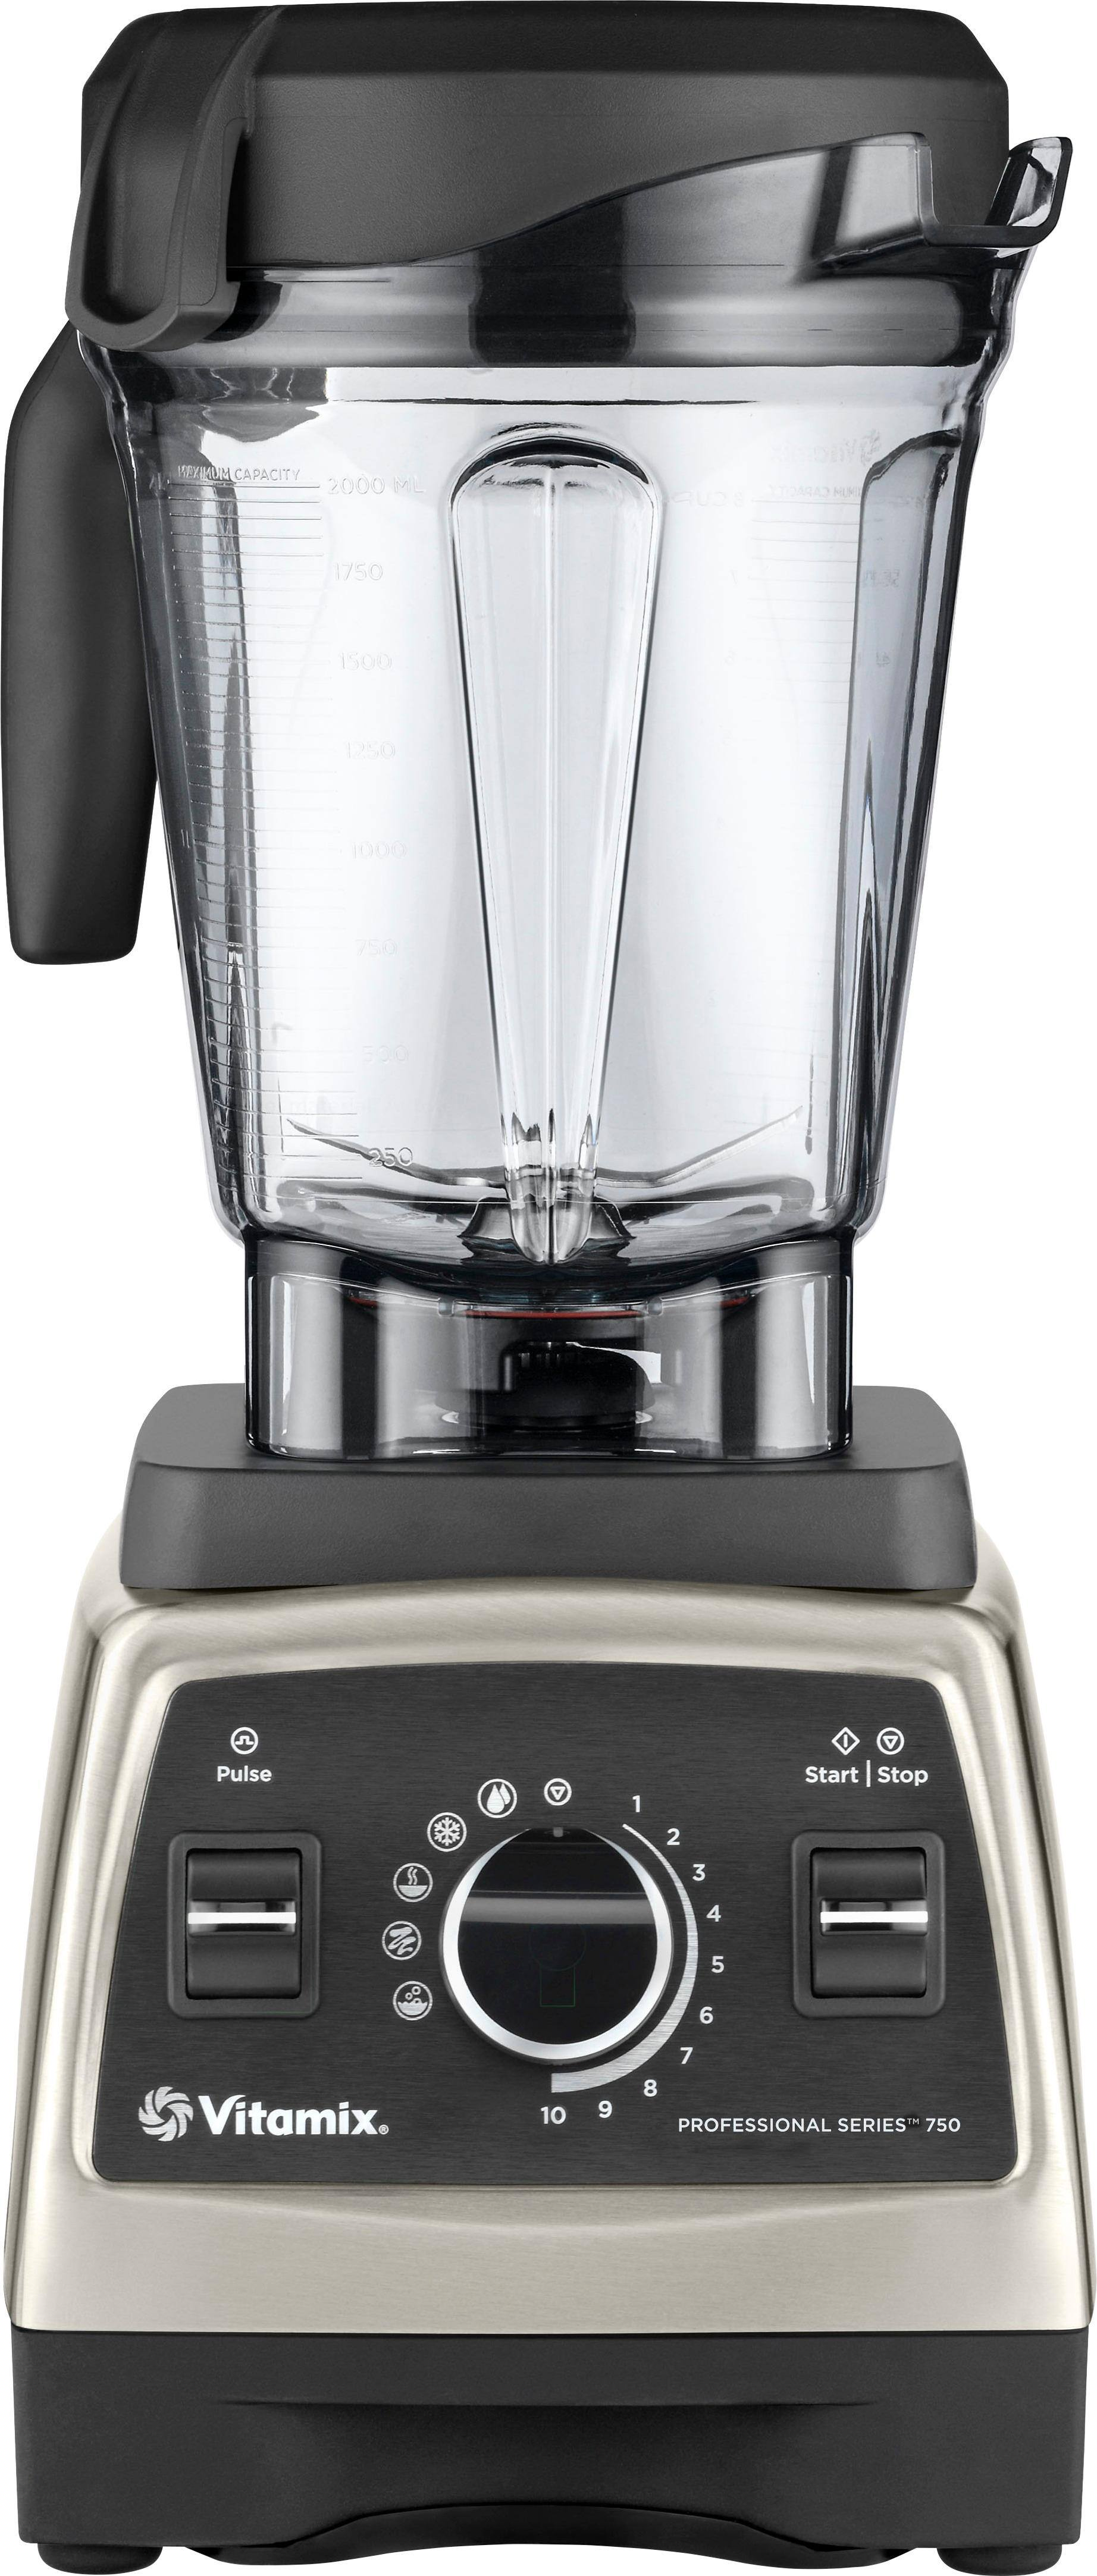 Vitamix - Professional Series 750 64-Oz. Blender - Brushed stainless $479.99 at Best Buy